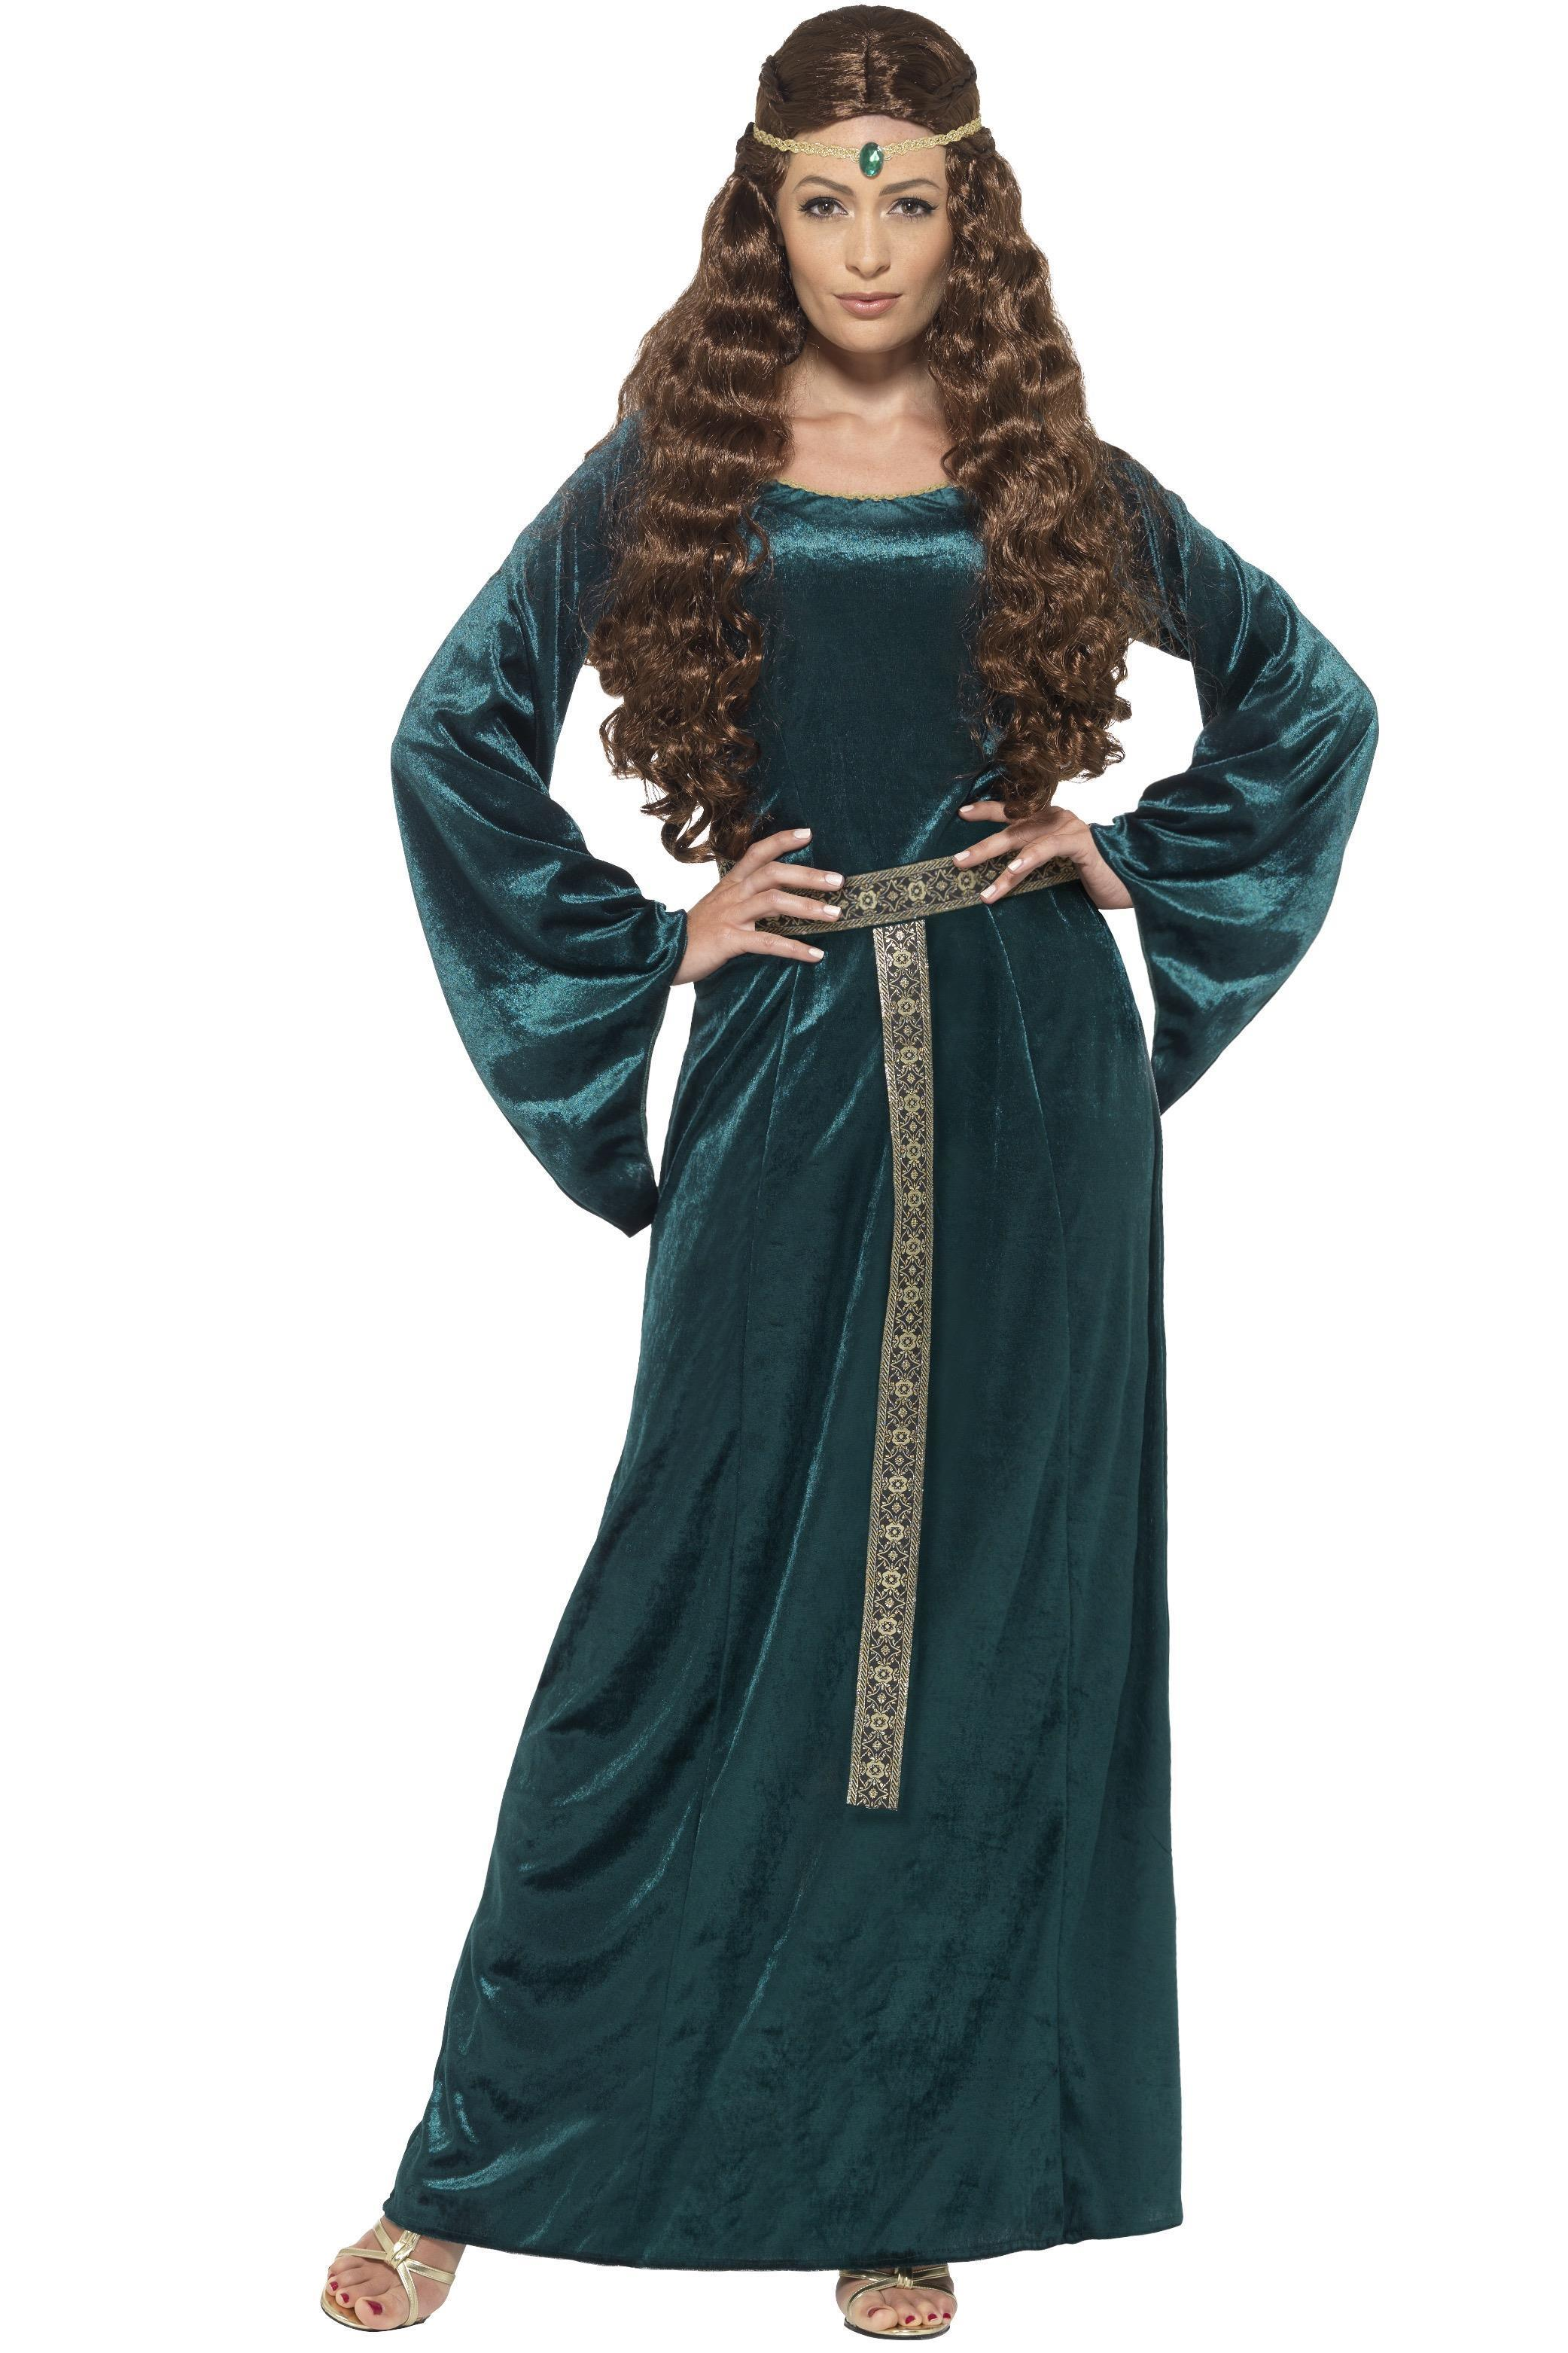 Medieval Maid Costume Green